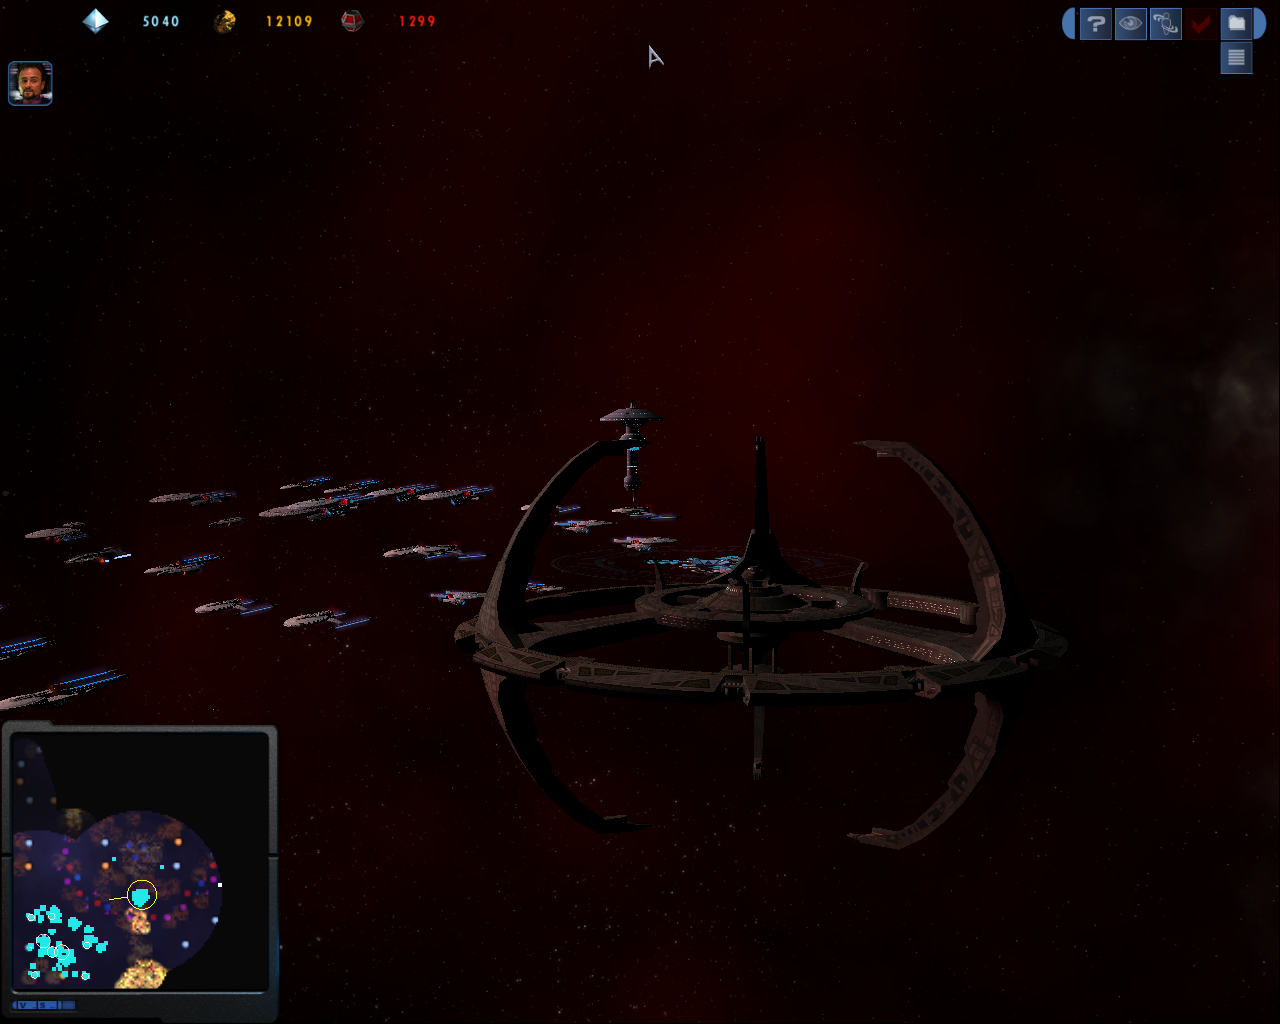 ds9.png